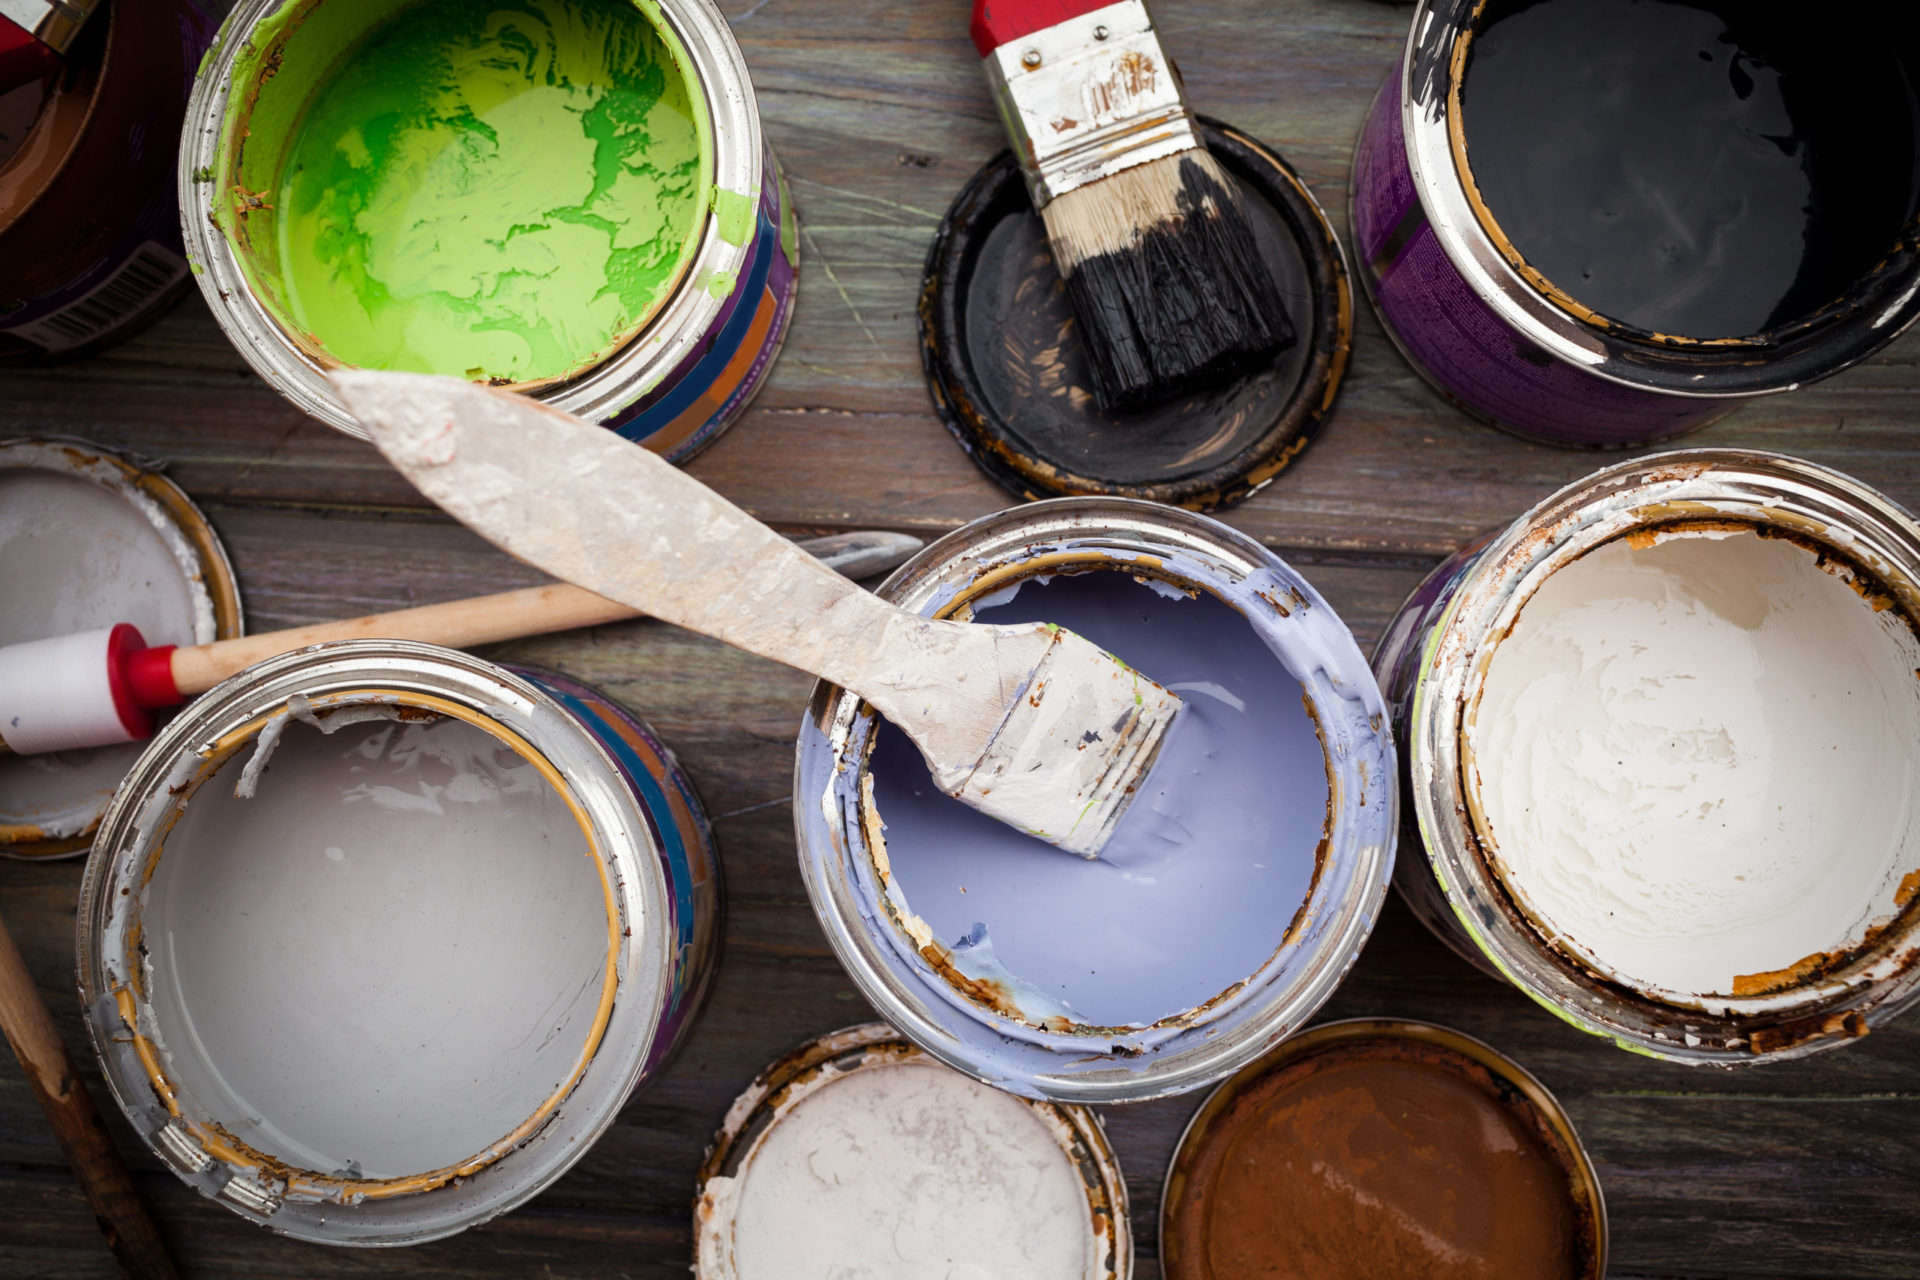 Painting set, paint on a wooden boardPainting set, paint on a wooden board